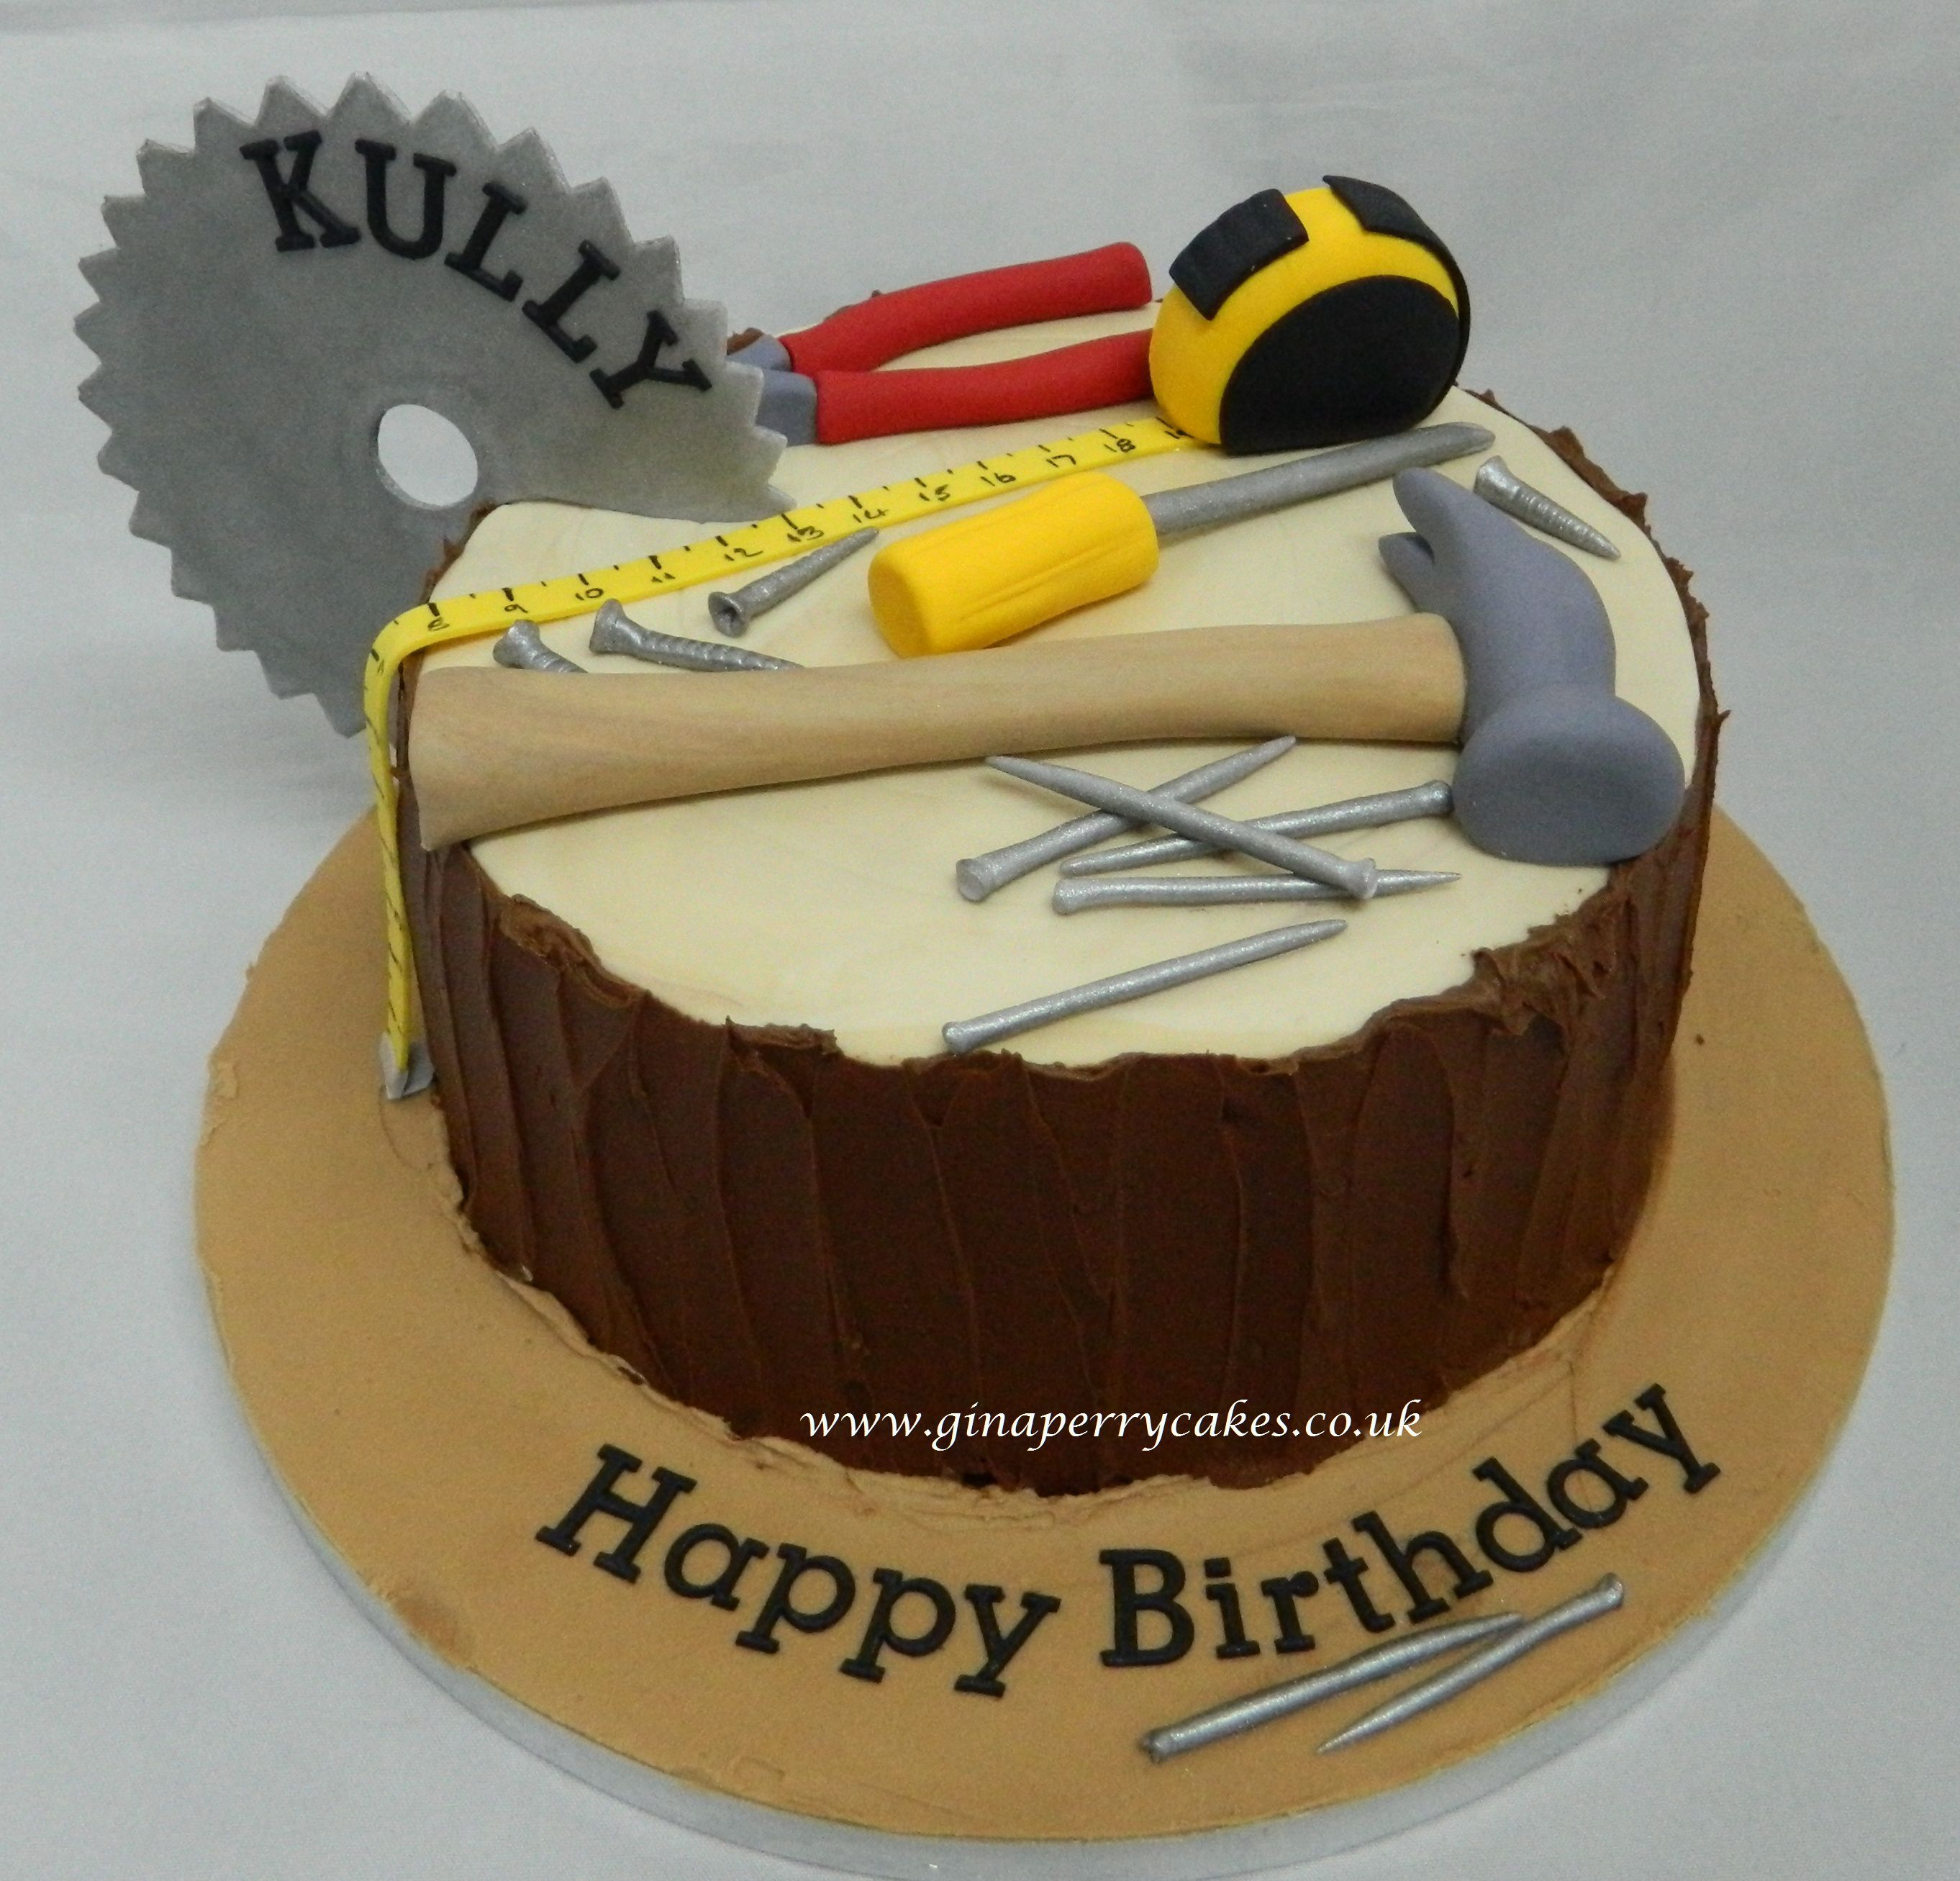 Geburtstagstorte Männer Builder And Carpenters Birthday Cake Torten Pinterest